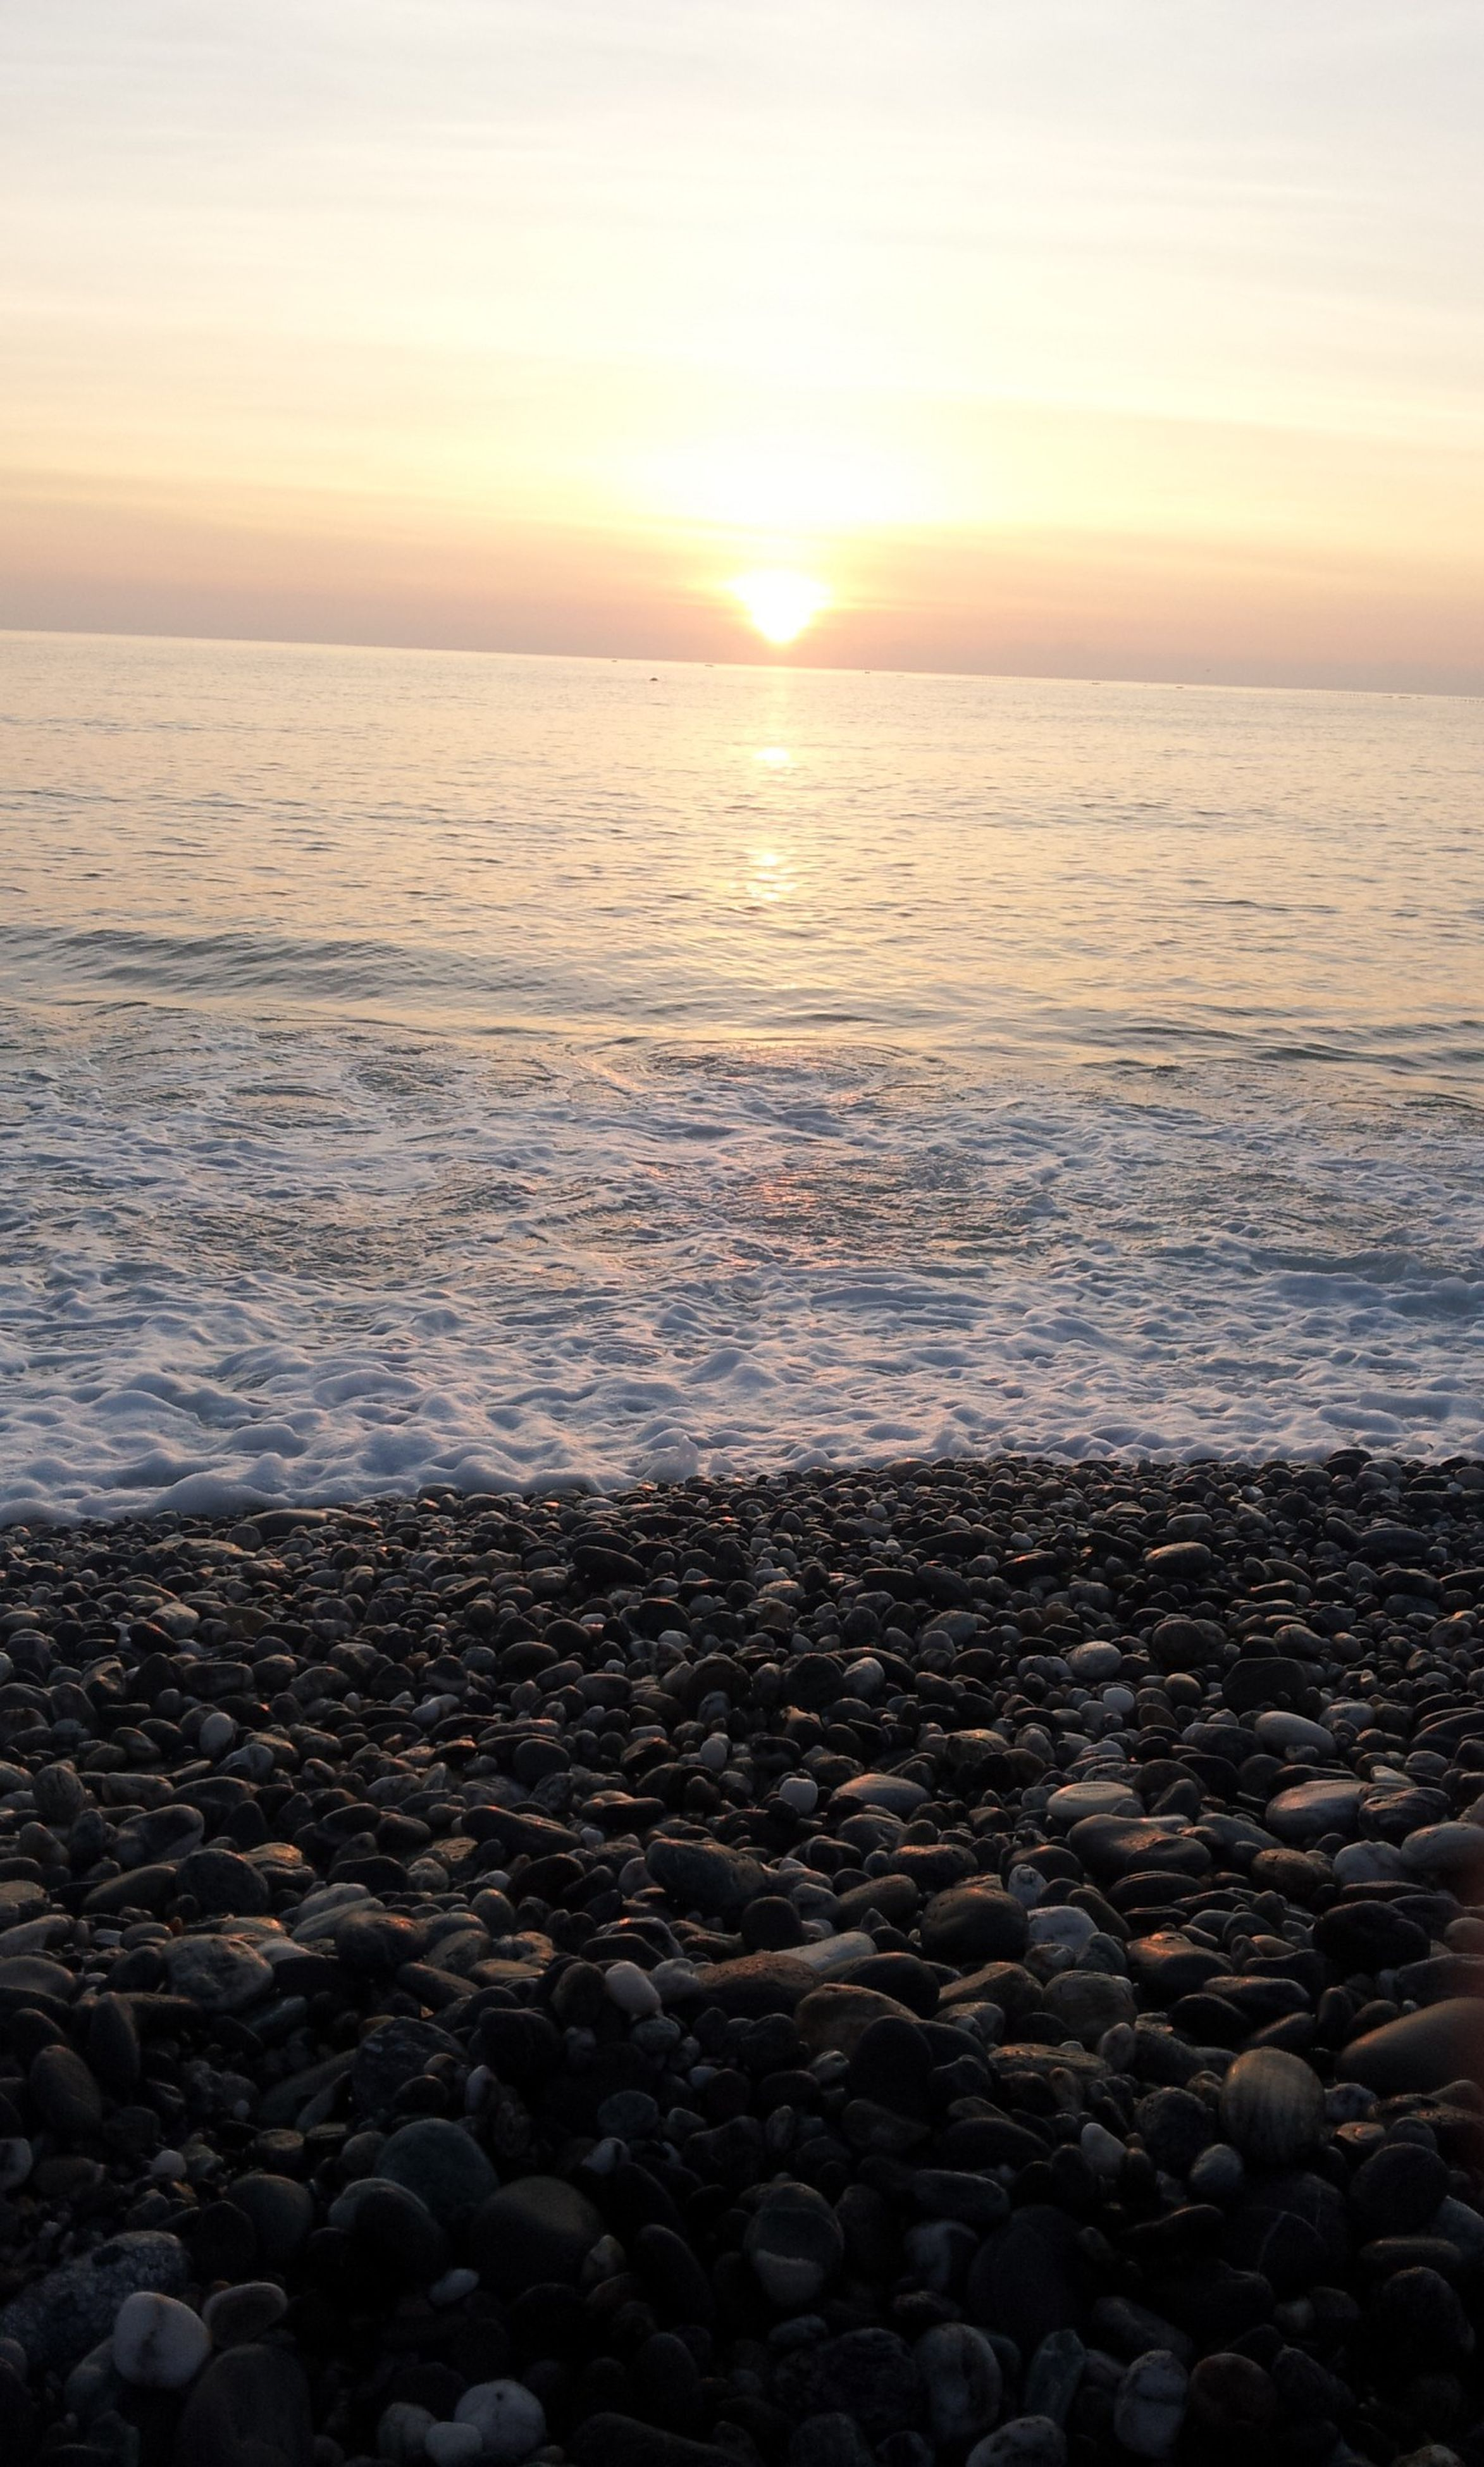 sea, water, horizon over water, sunset, scenics, tranquil scene, beach, beauty in nature, tranquility, sun, shore, nature, sky, idyllic, rock - object, stone - object, reflection, wave, seascape, sunlight